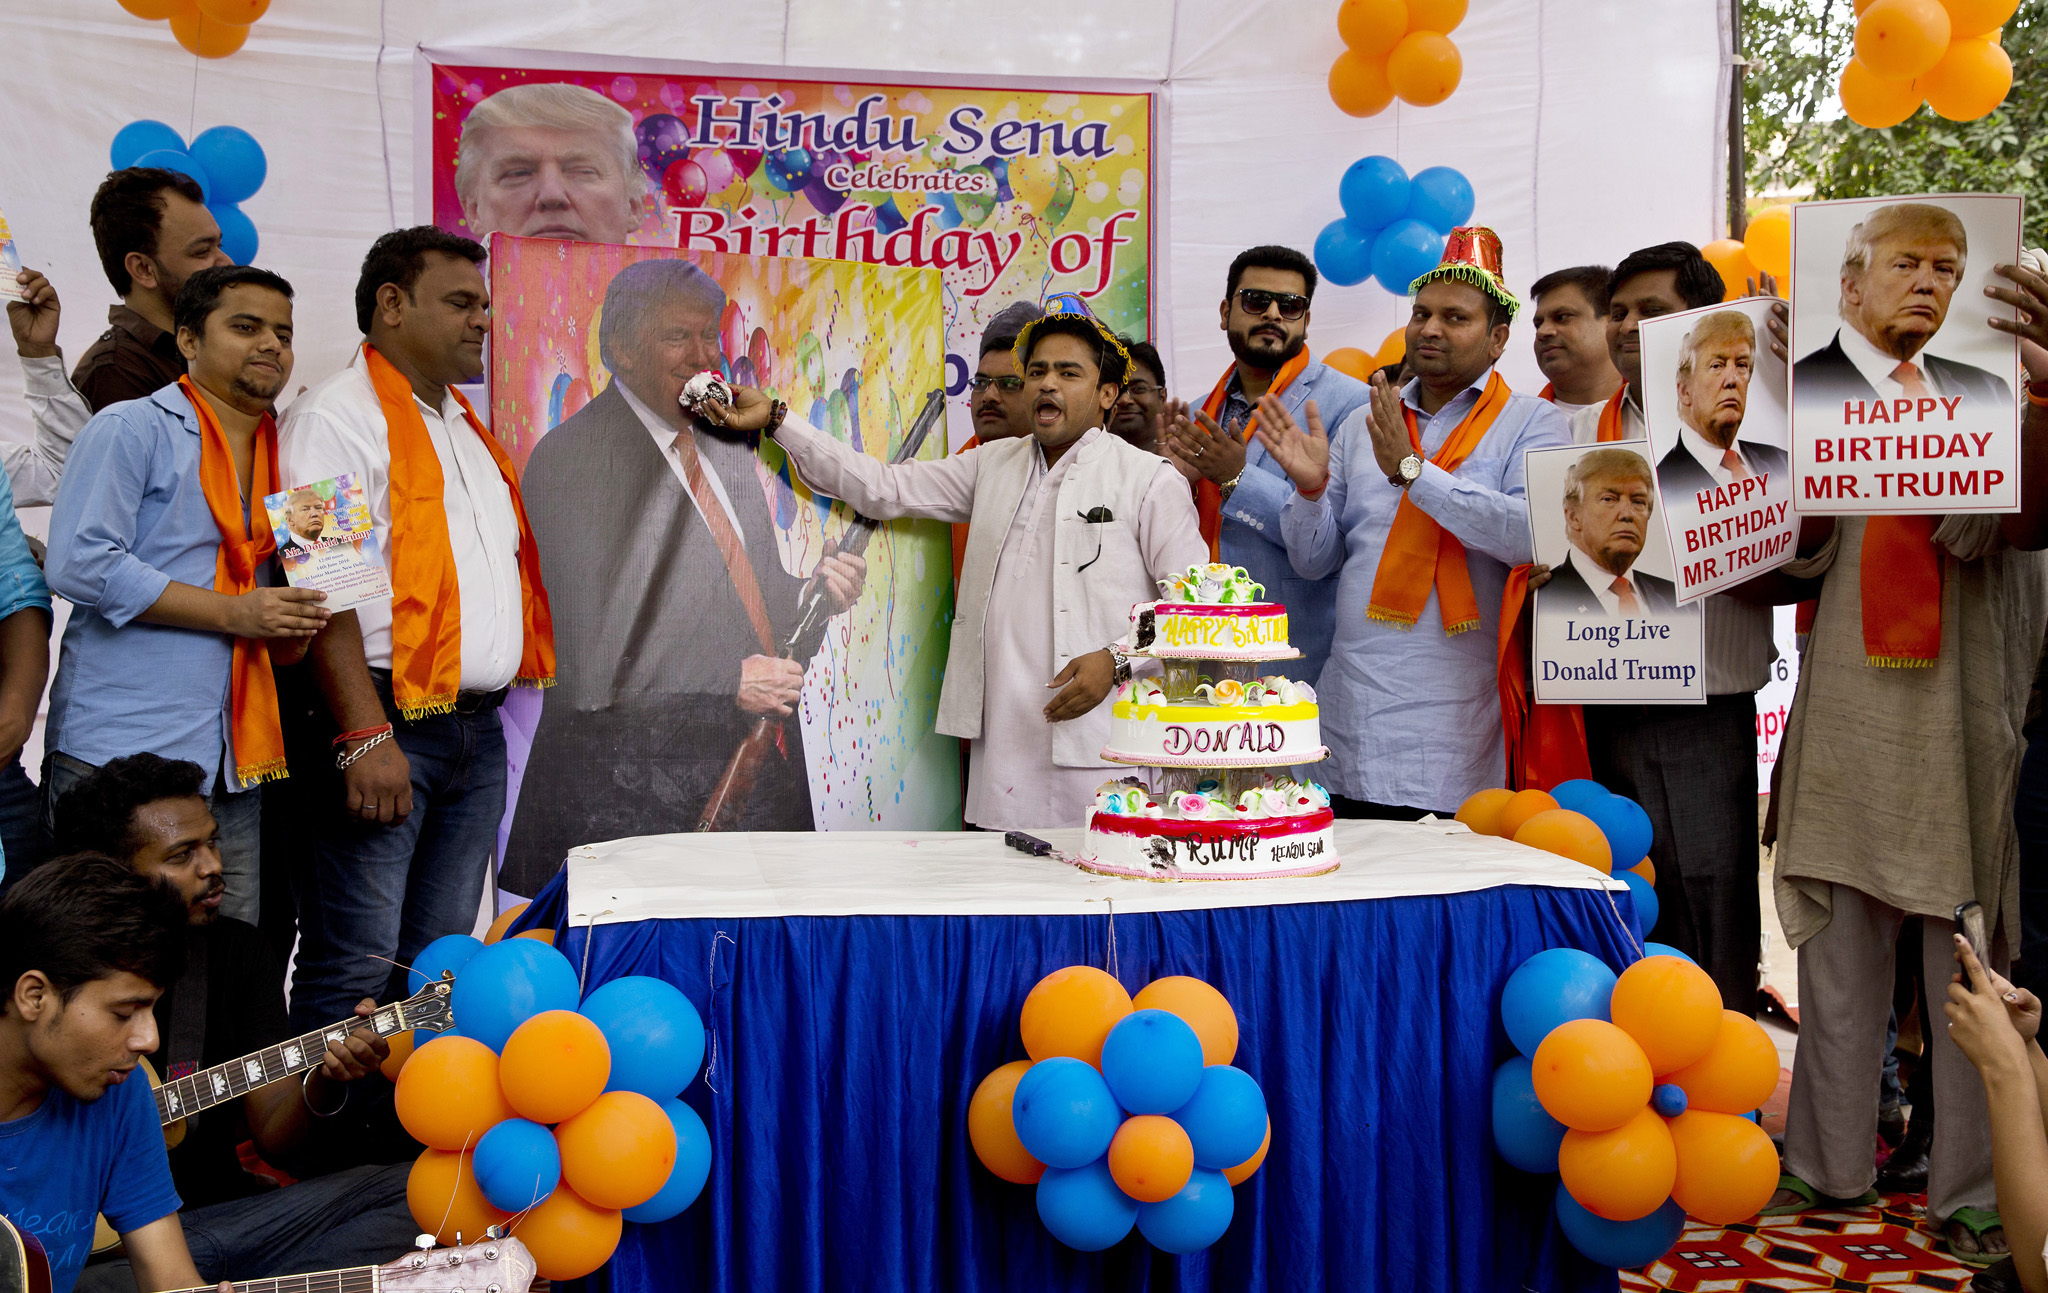 Members of Hindu nationalist party 'Hindu Sena' or Hindu Army, celebrate the birthday of U.S. presidential candidate Donald Trump in New Delhi, India, Tuesday, June 14, 2016. The political group had earlier performed Hindu rituals to ensure Trump's presidential win and to solve the growing problems of Islamic terrorism. (AP Photo/Saurabh Das)